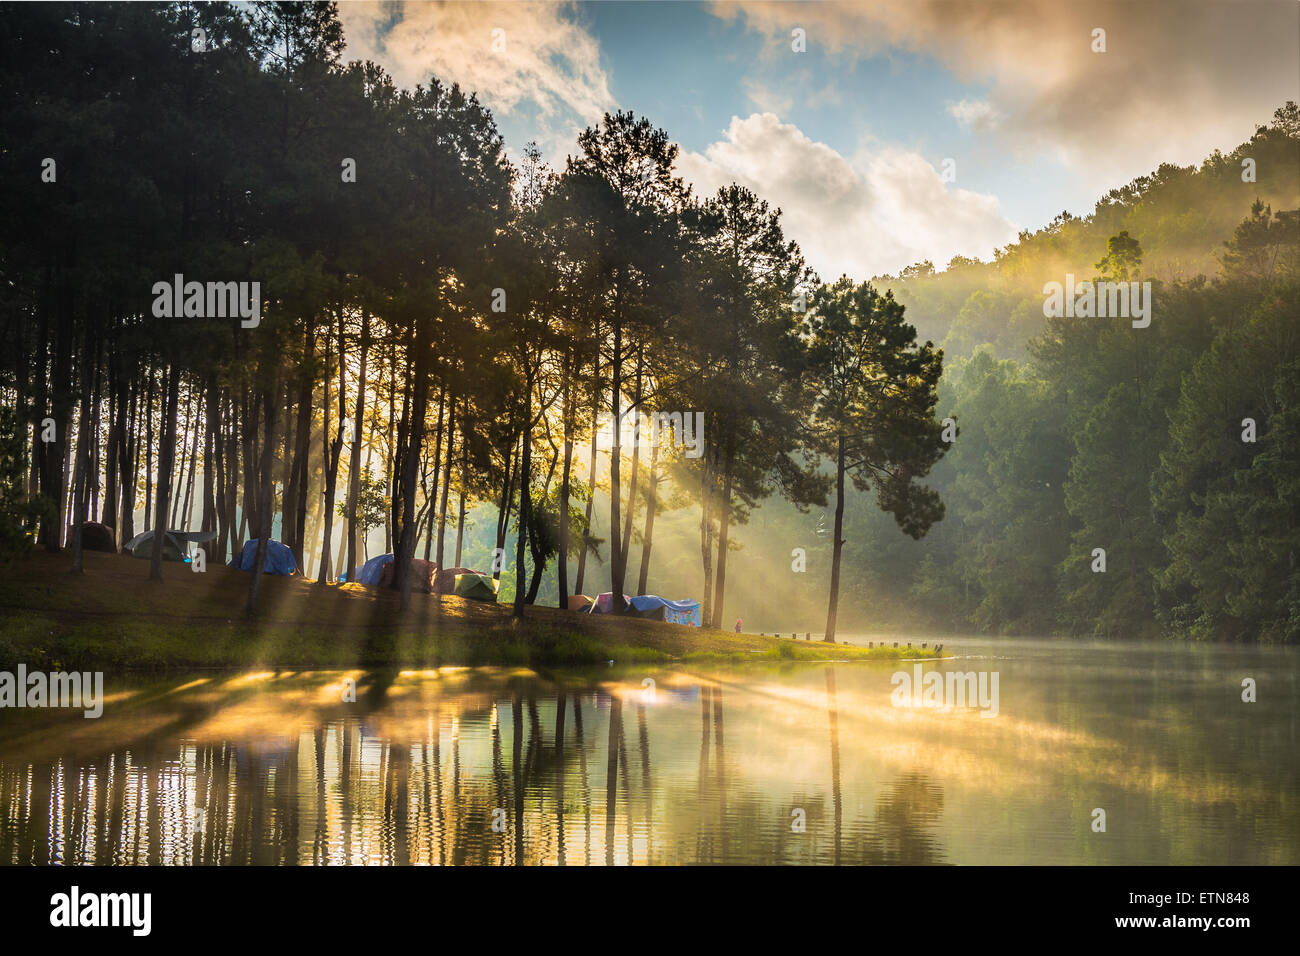 Tents on a tree lined river bank, Pang Ung, Thailand - Stock Image